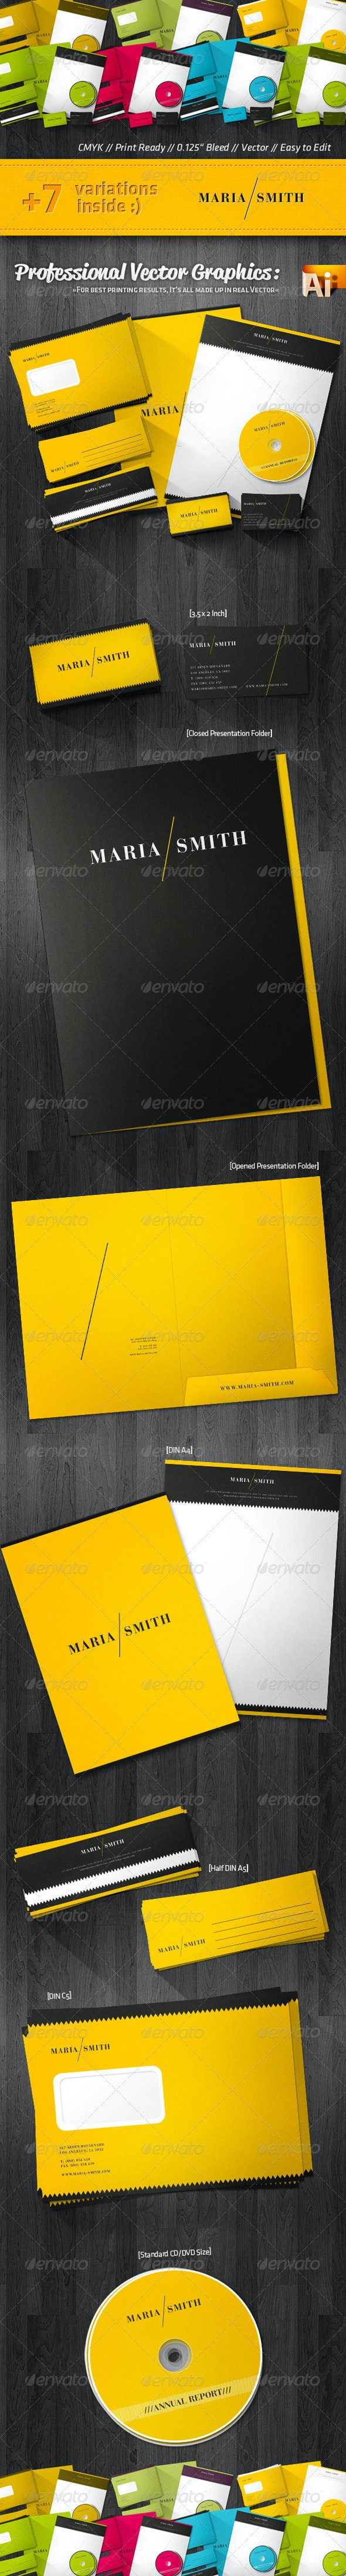 Luxury Corporate Identity Package Retro Style - Stationery Print Templates